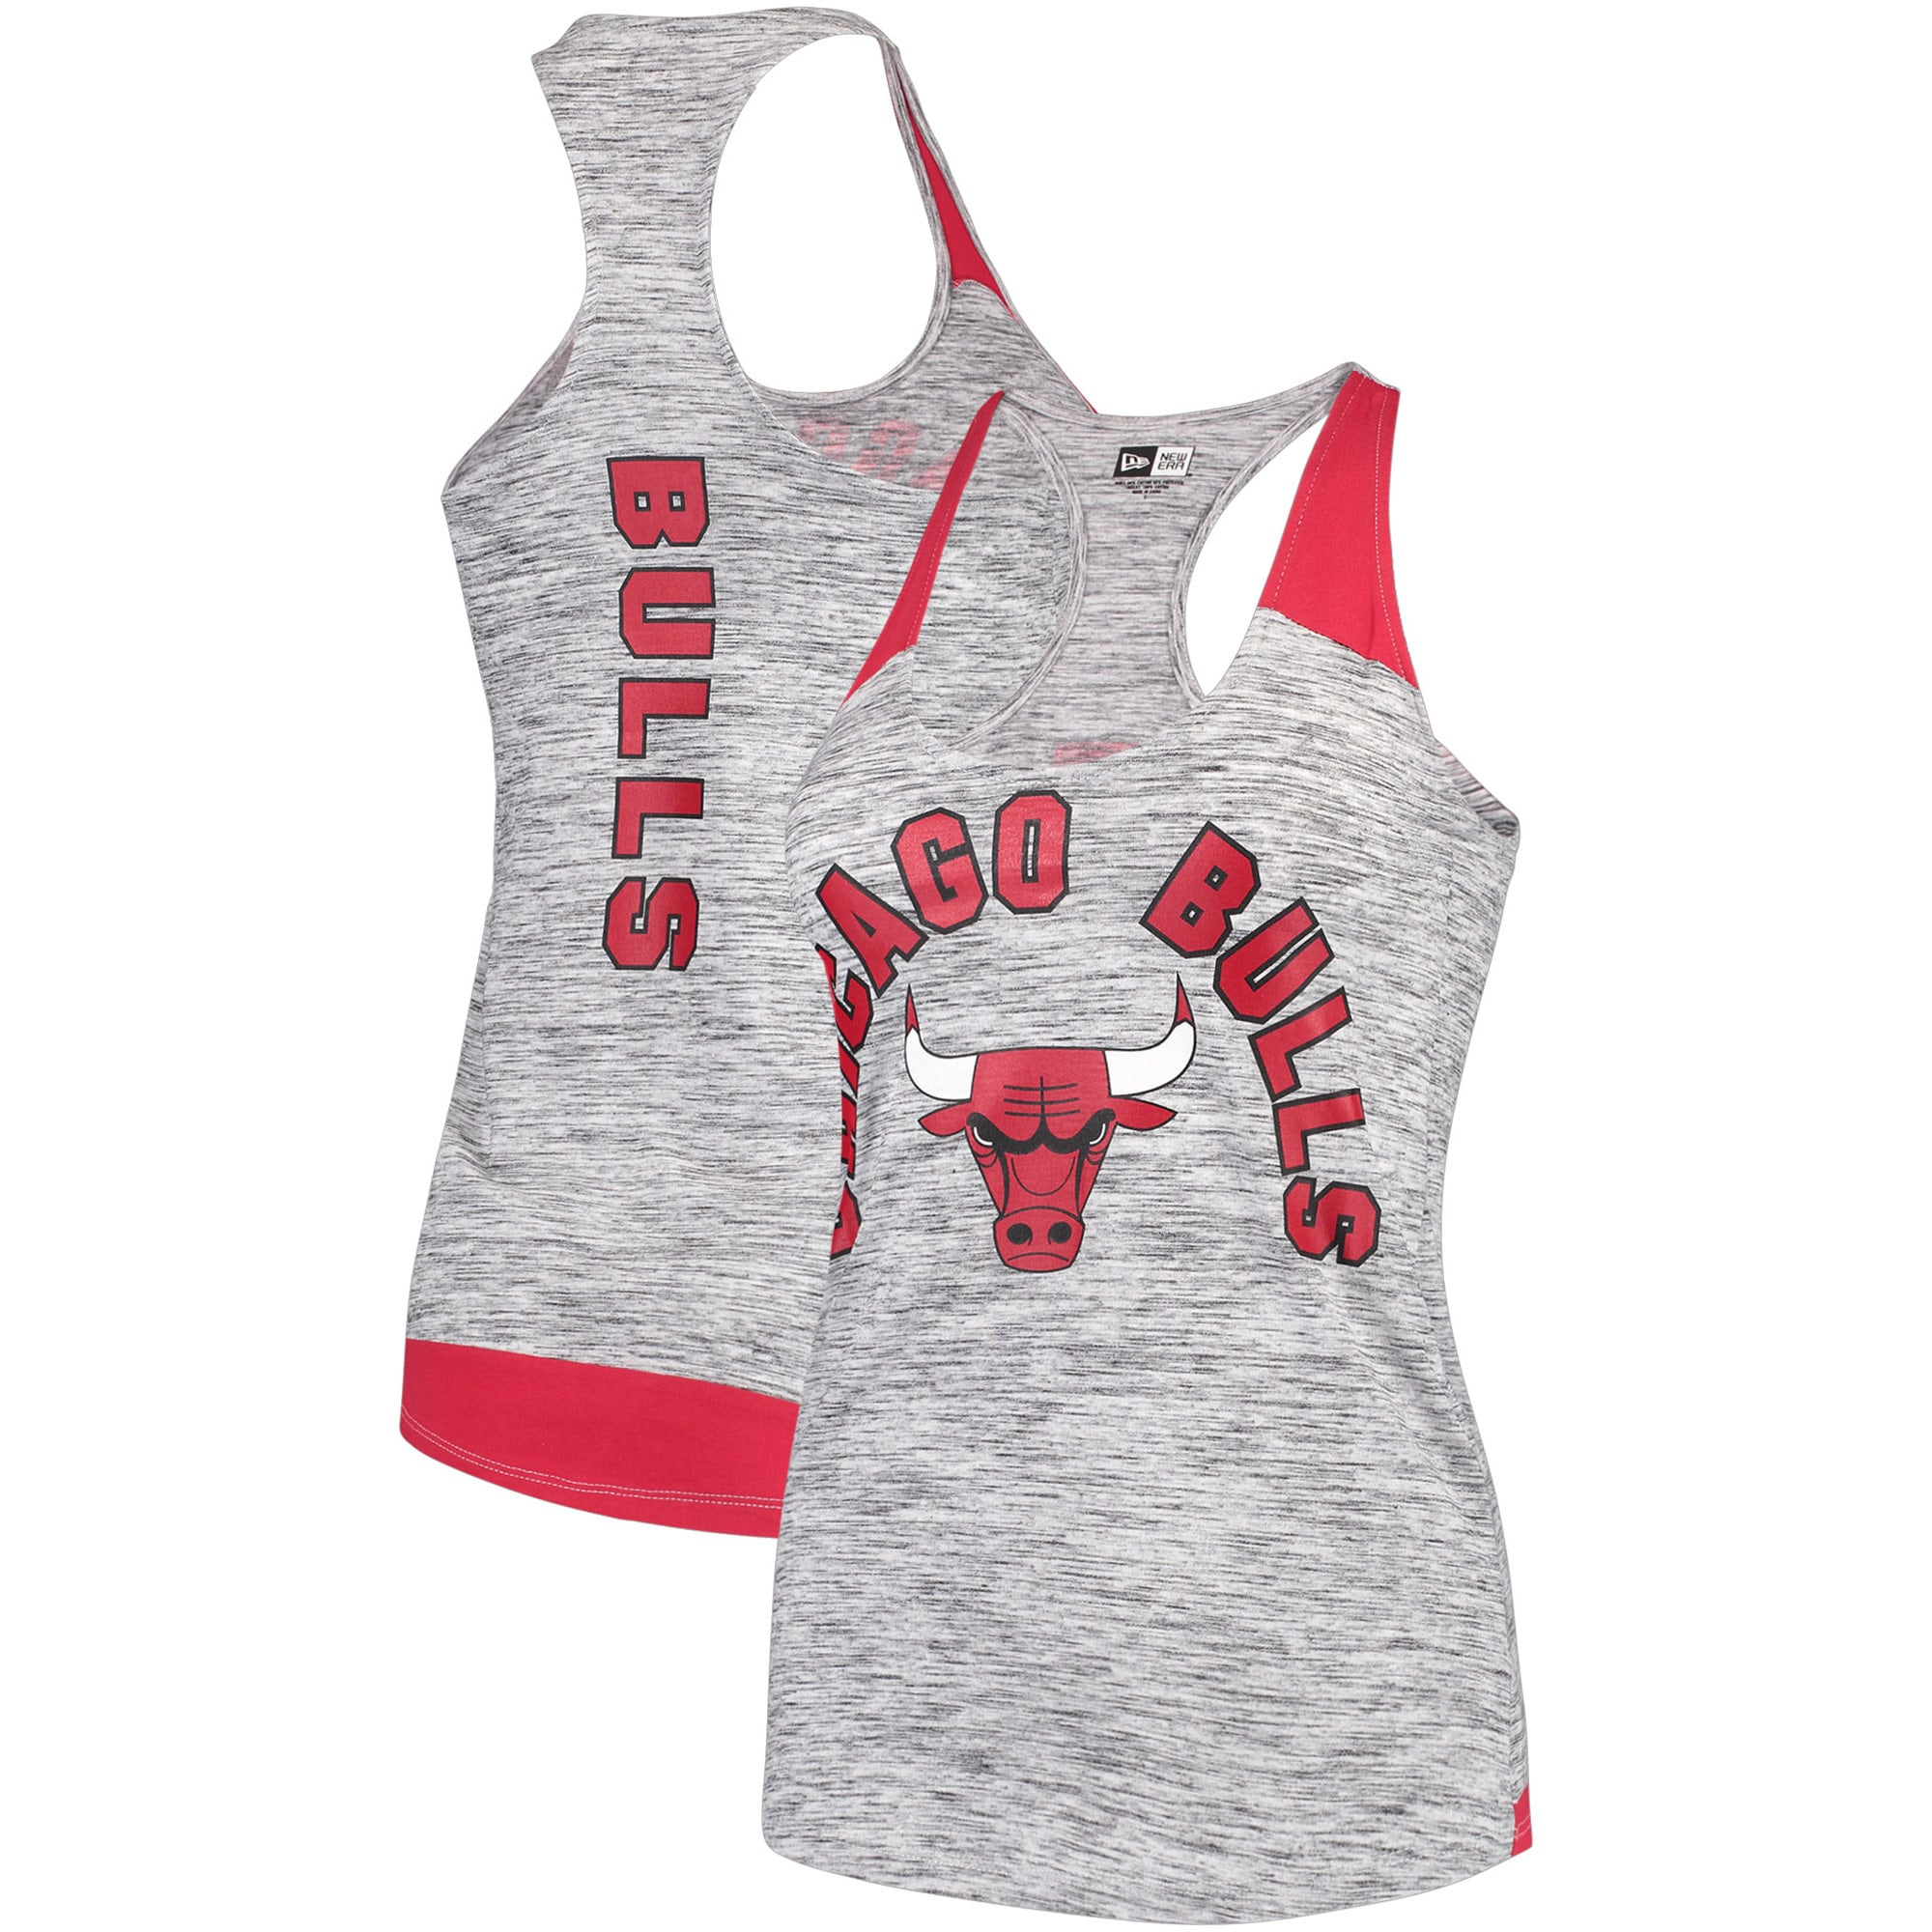 Chicago Bulls New Era Women's Space Dye Racer Back Tank Top - Black/Red